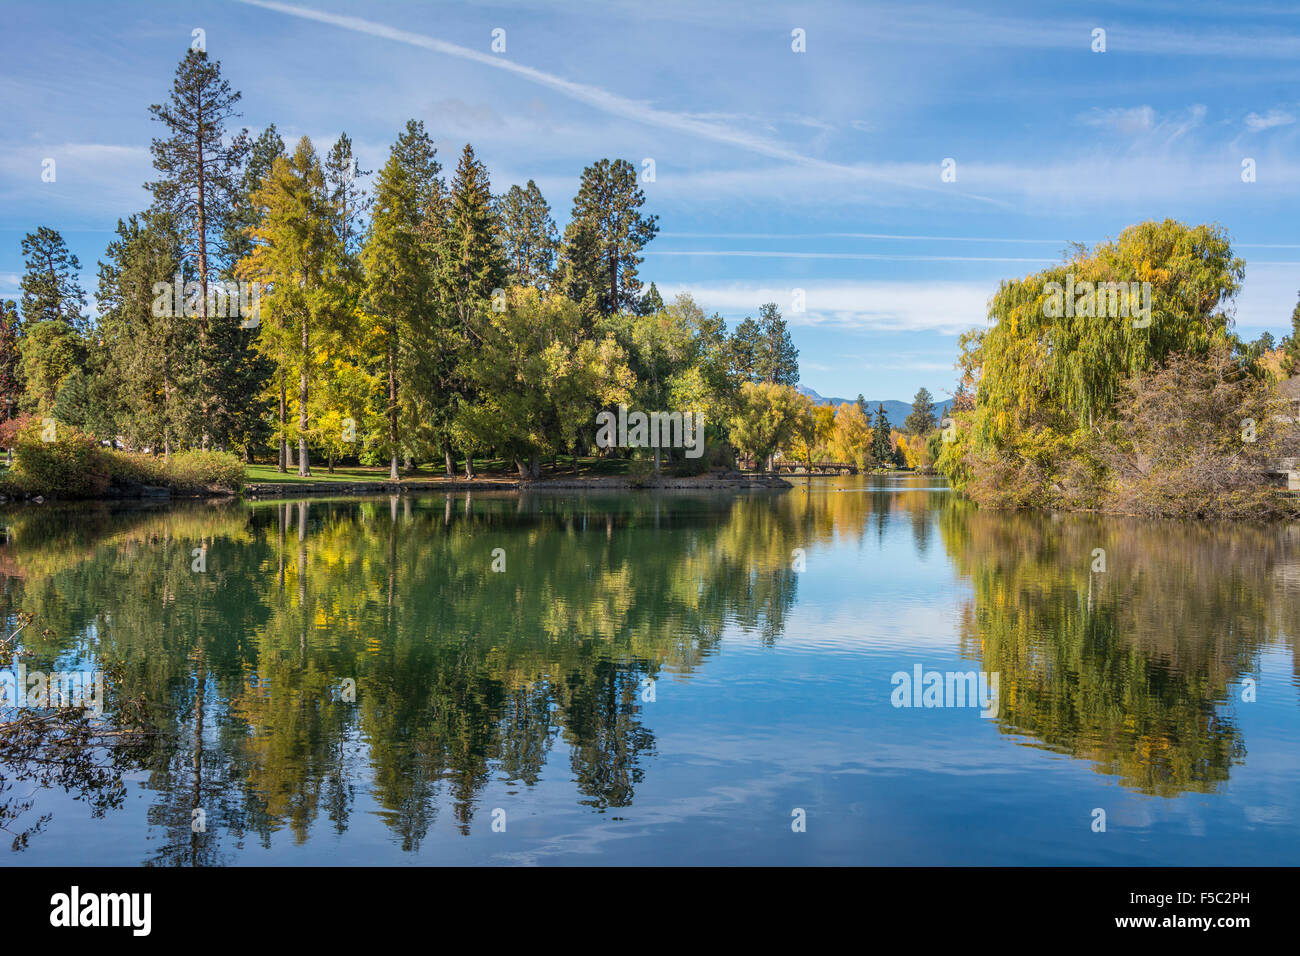 Deschutes River Bend Oregon Usa Stockfotos & Deschutes River Bend ...